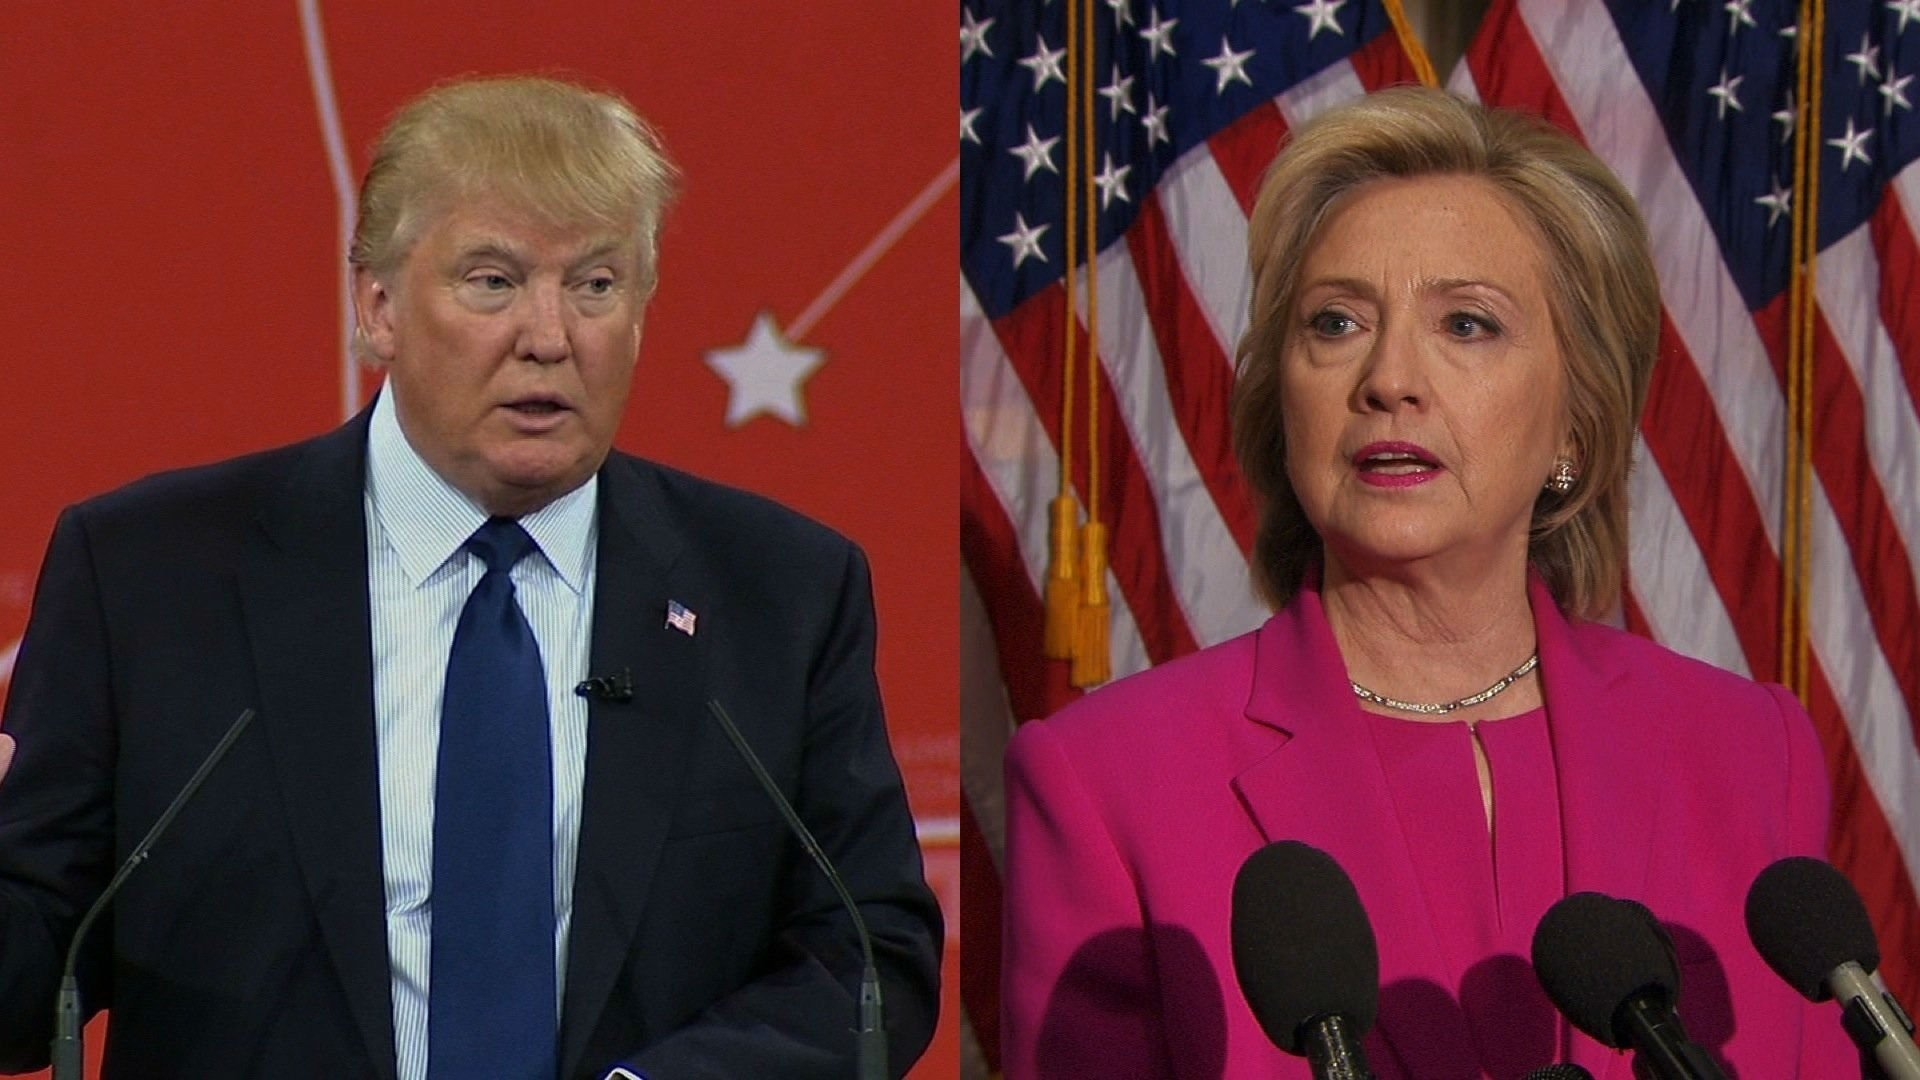 Clinton leads Trump in key swing states